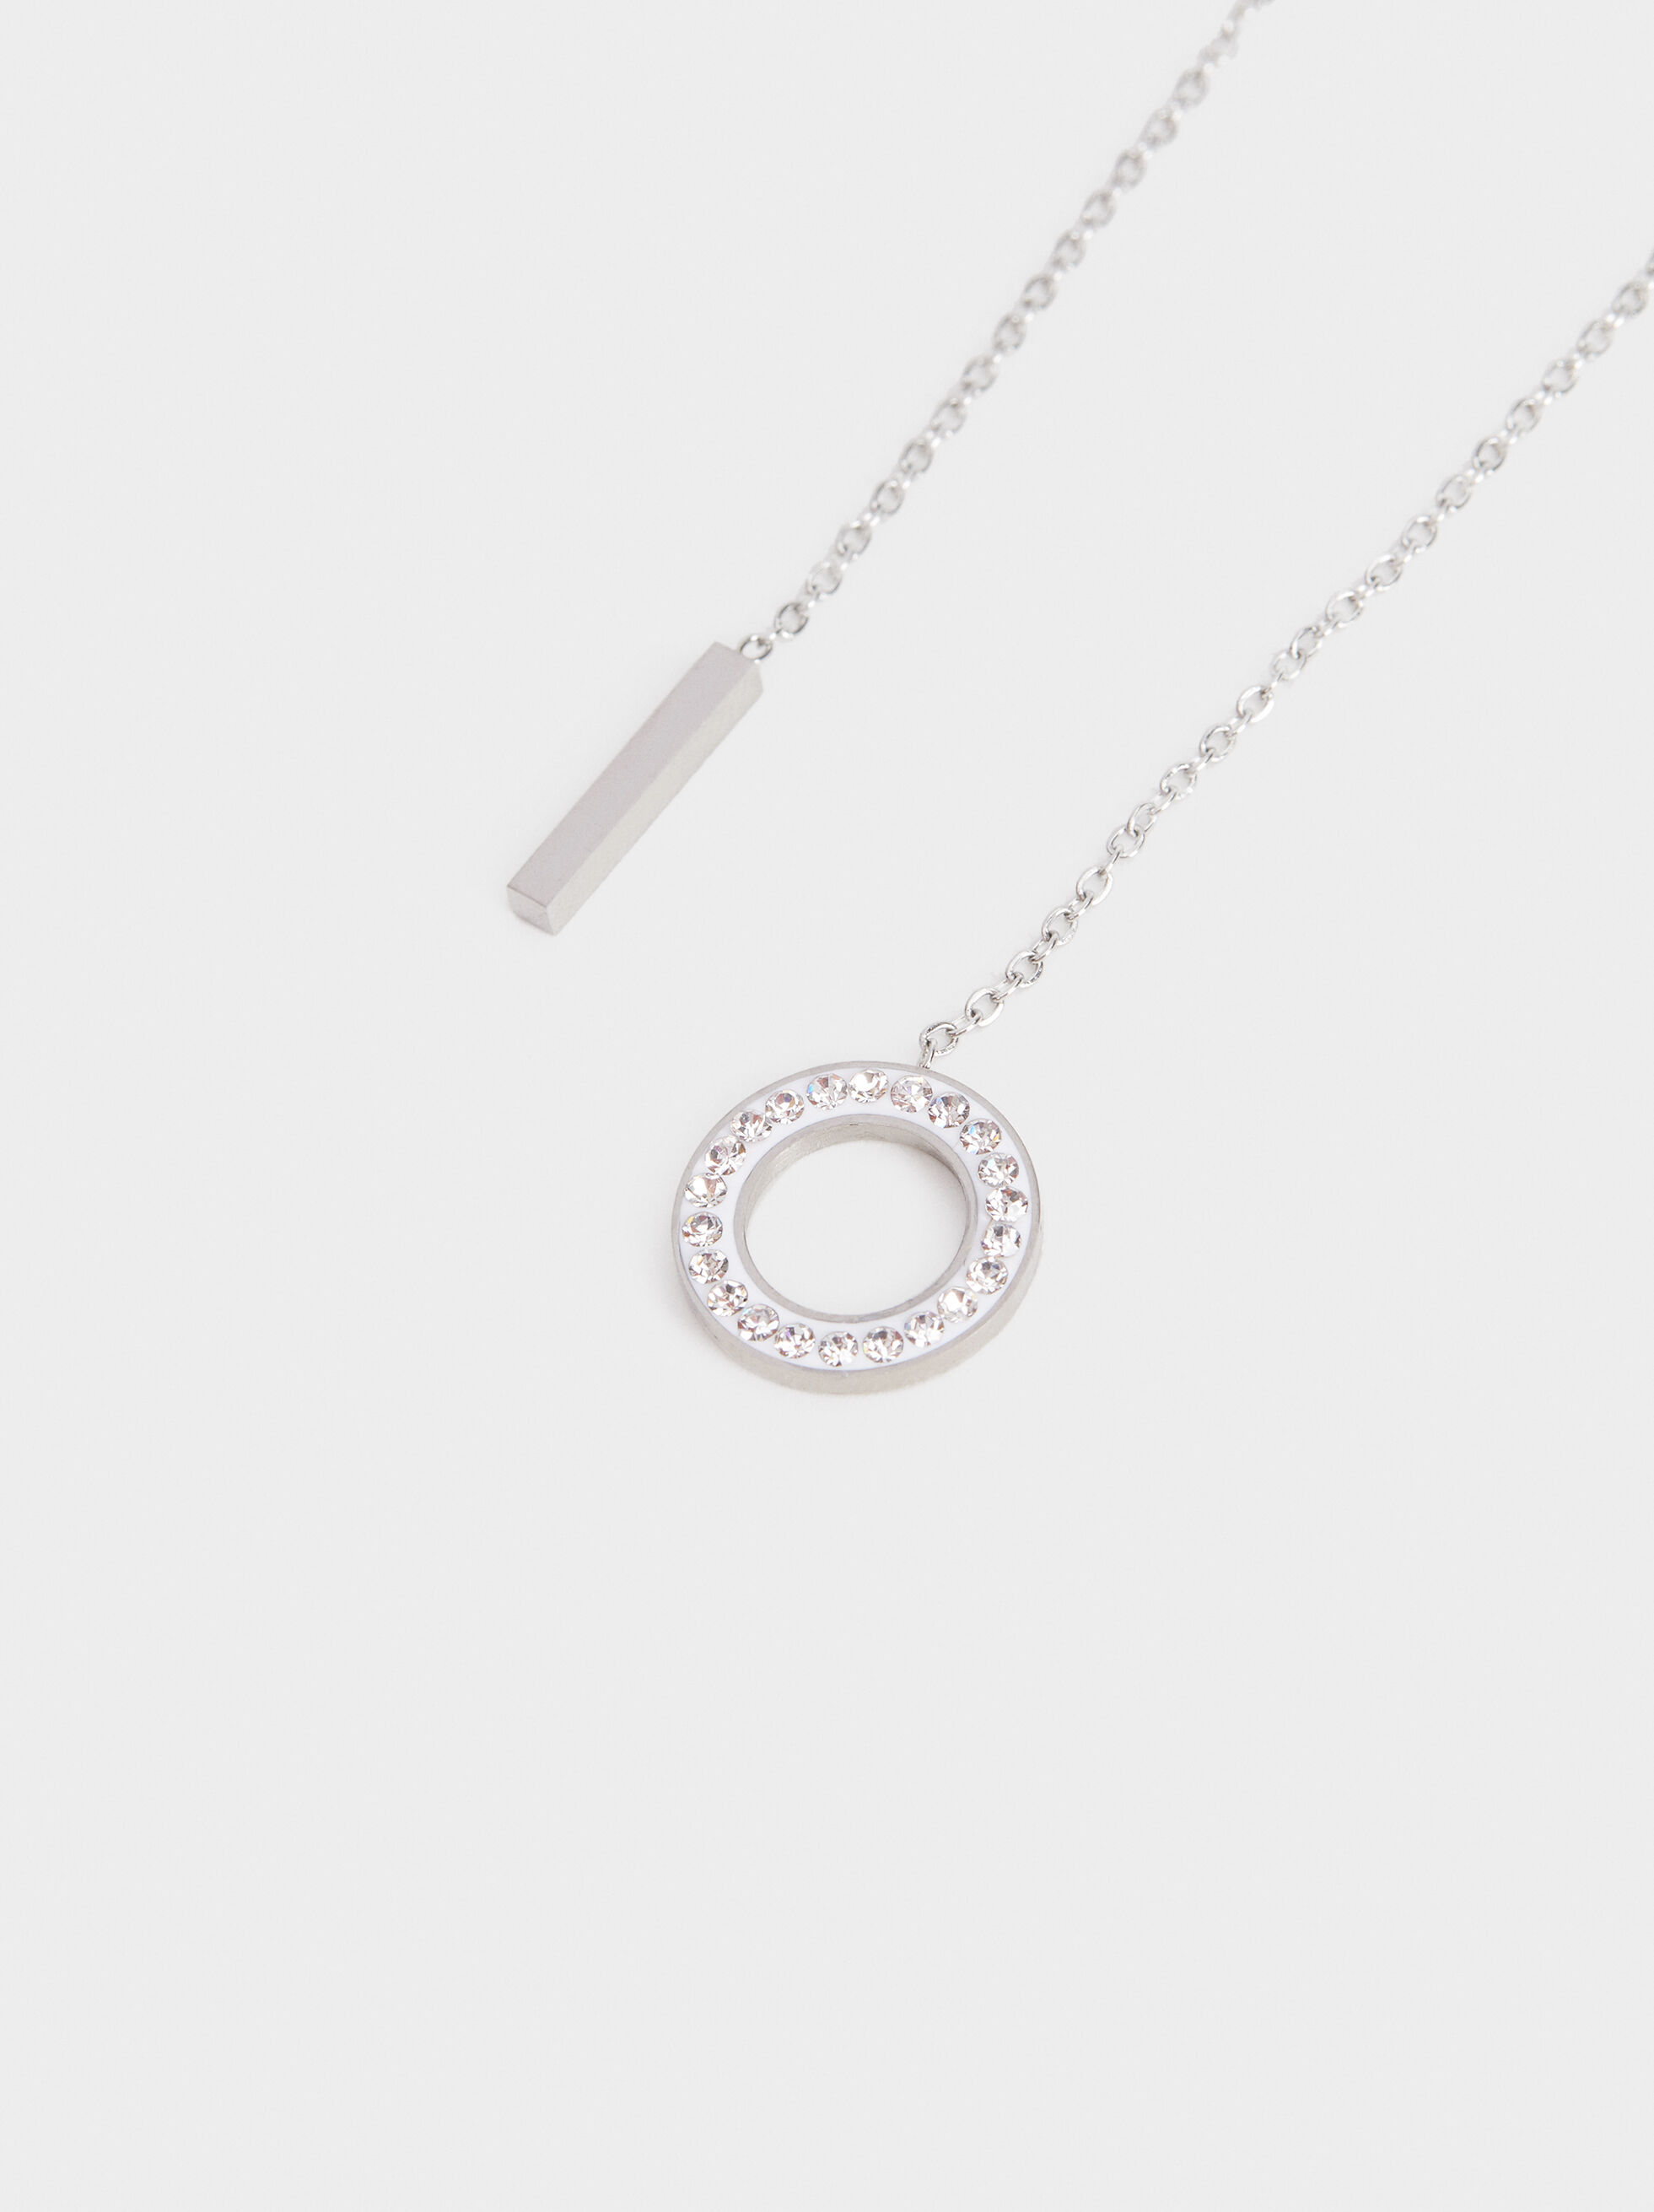 Short Steel Necklace With Rhinestones, Silver, hi-res